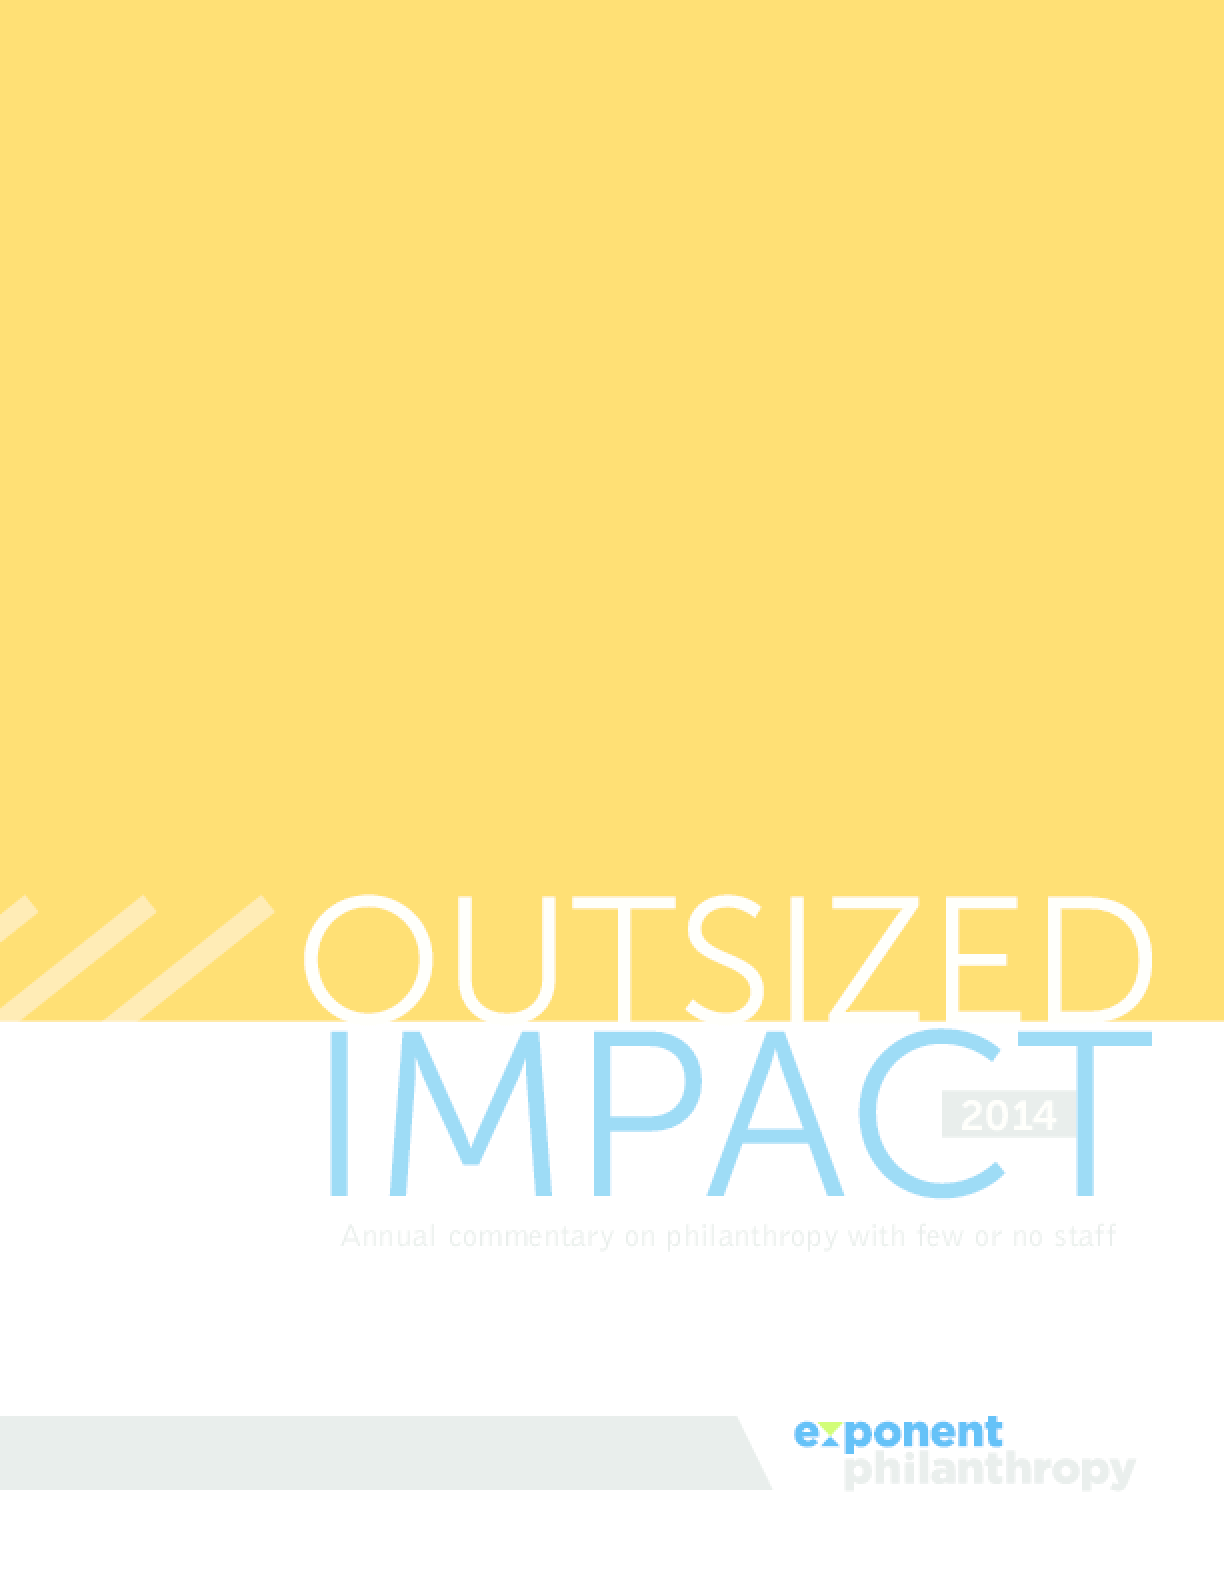 Stories of Outsized Impact featuring Jeffrey Glebocki